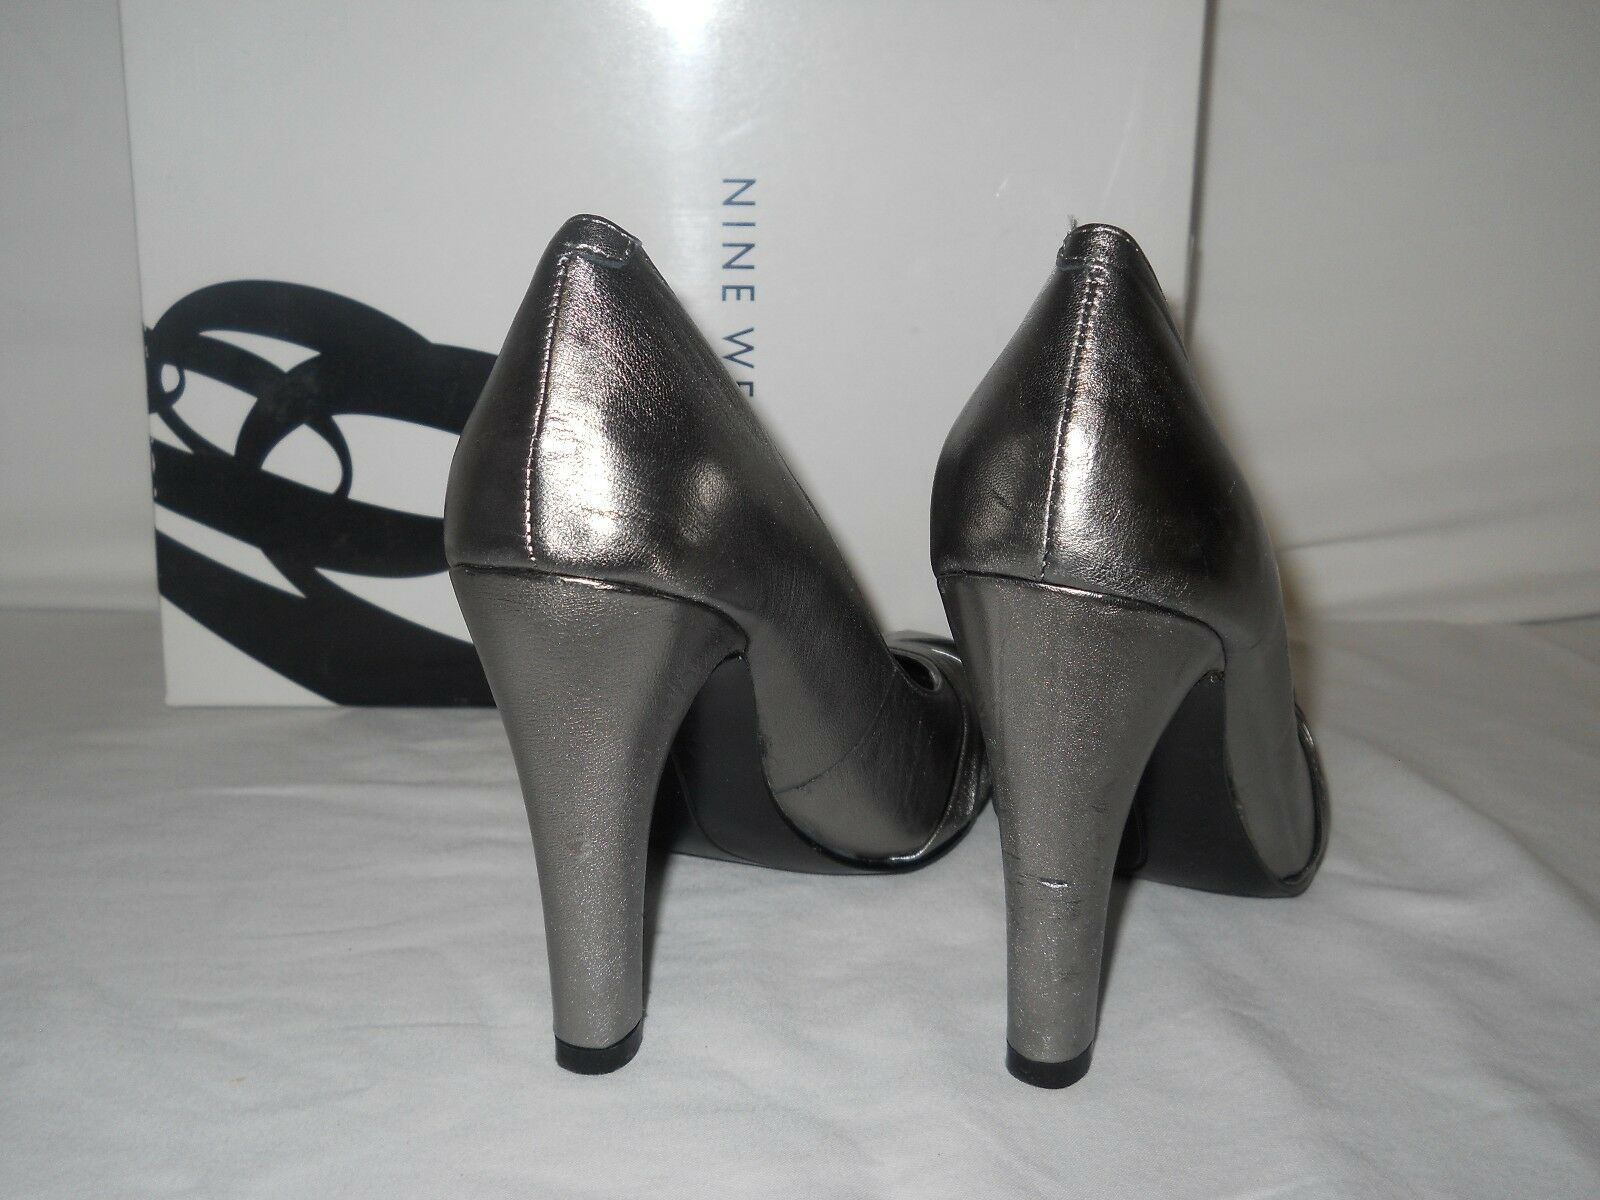 Nine West NEU Store Display Damenschuhe Shamira Pewter Leder Heels 5.5 M Schuhes